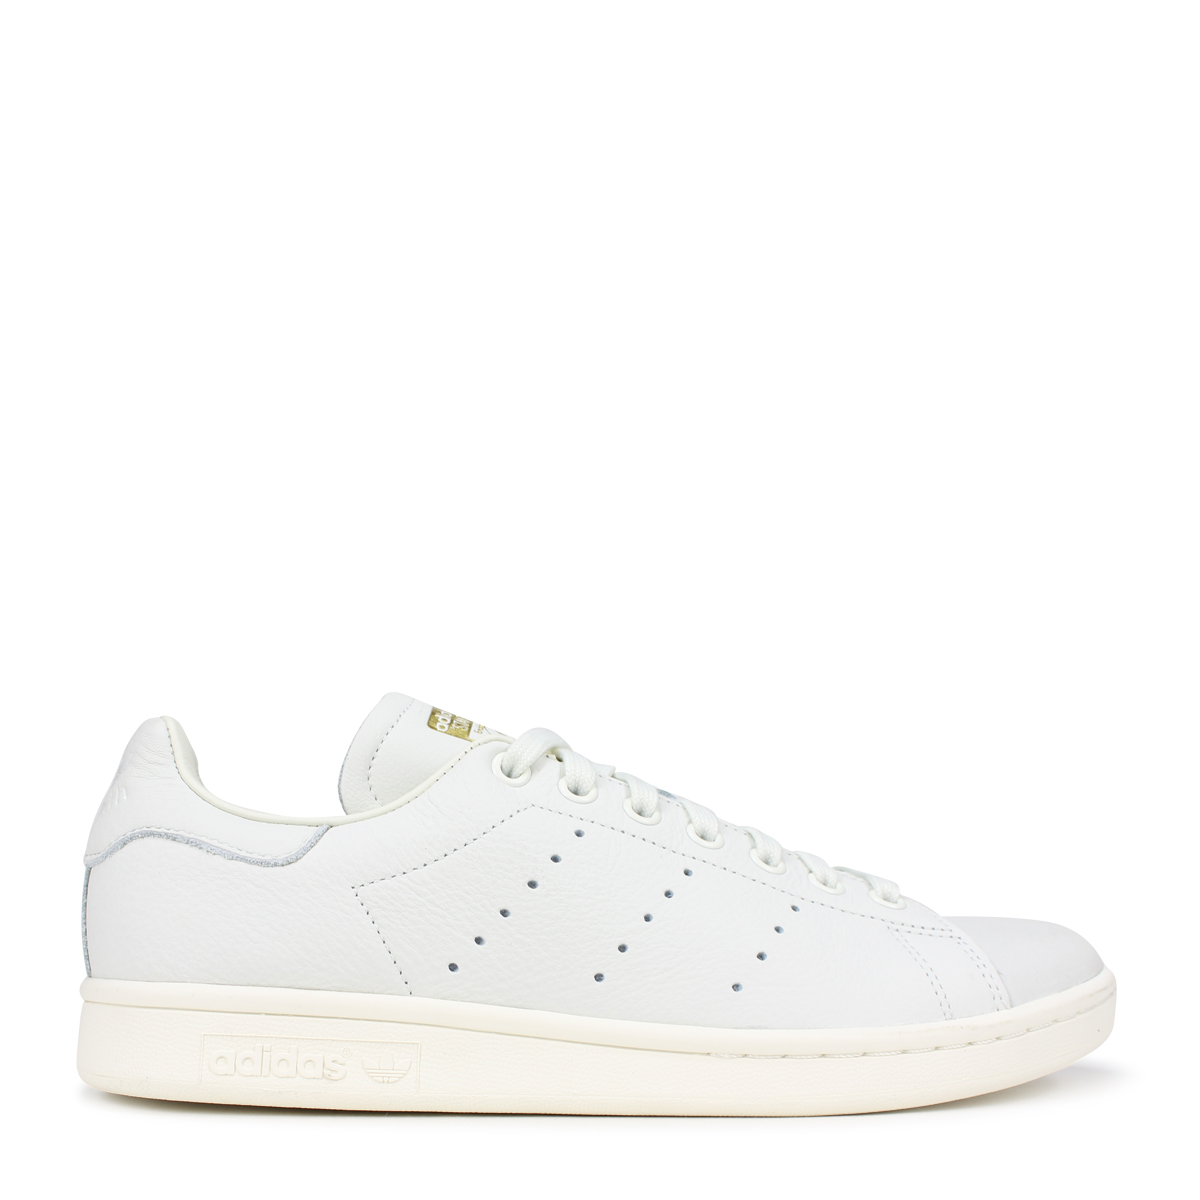 meet 38abe 6d5a0 adidas Originals STAN SMITH PREMIUM Adidas originals Stan Smith sneakers  men gap Dis B37900 white  load planned Shinnyu load in reservation product  8 14 ...